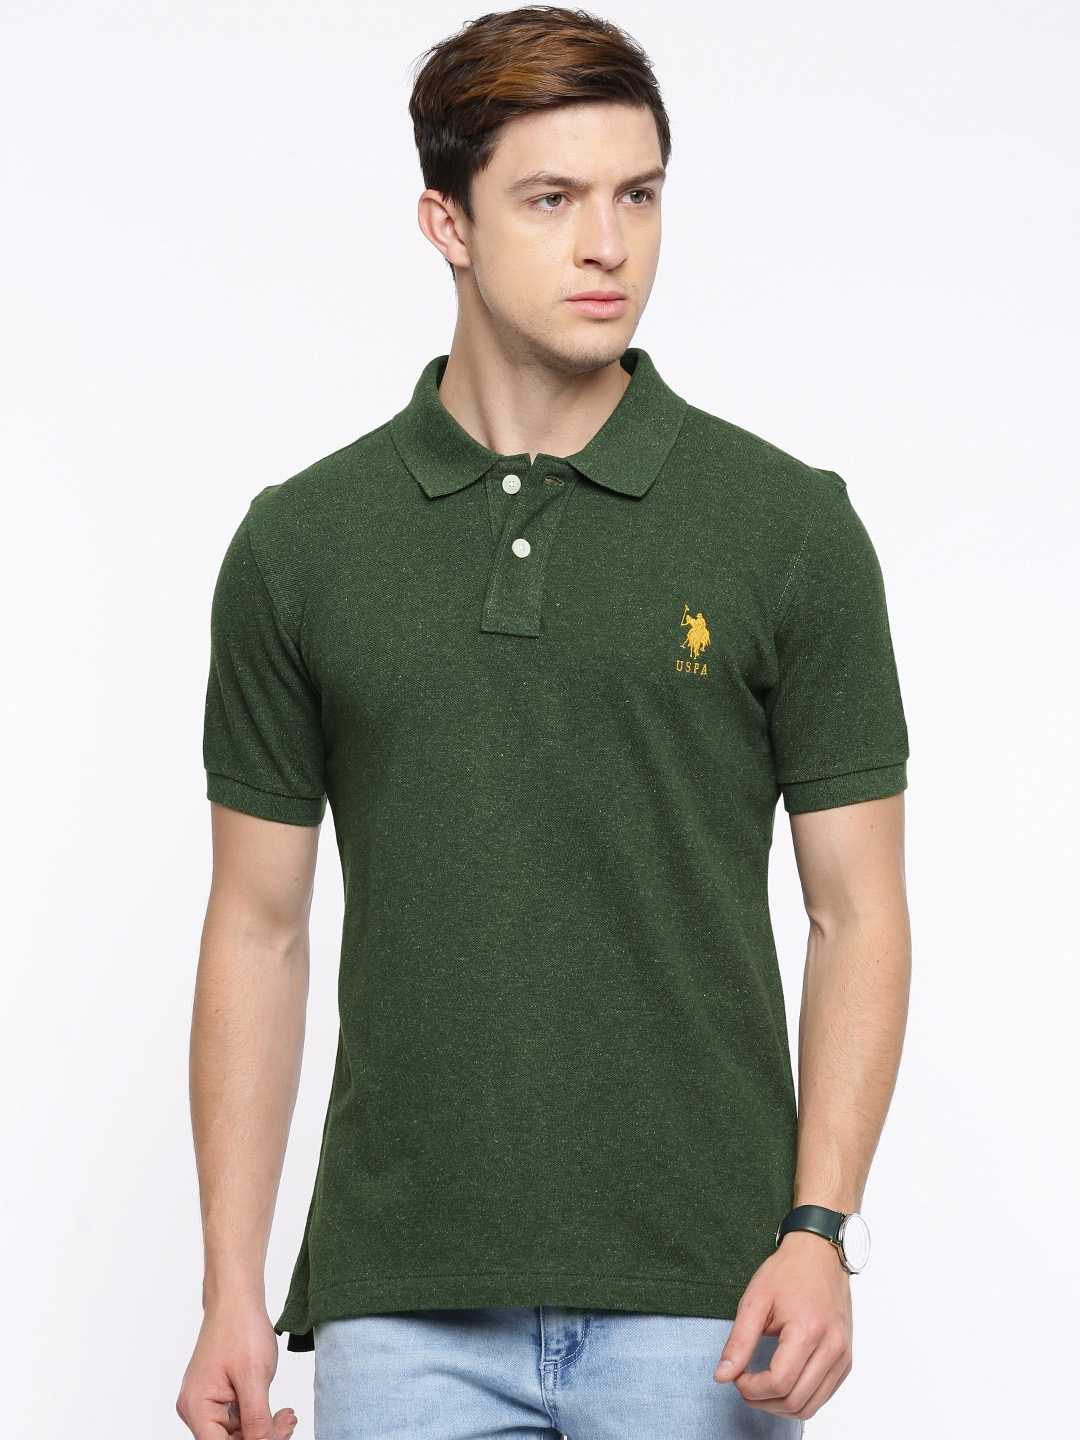 2b9a92f88f5575 Buy U.S. Polo Assn. Men Olive Green Solid Polo T Shirt - Tshirts for ...